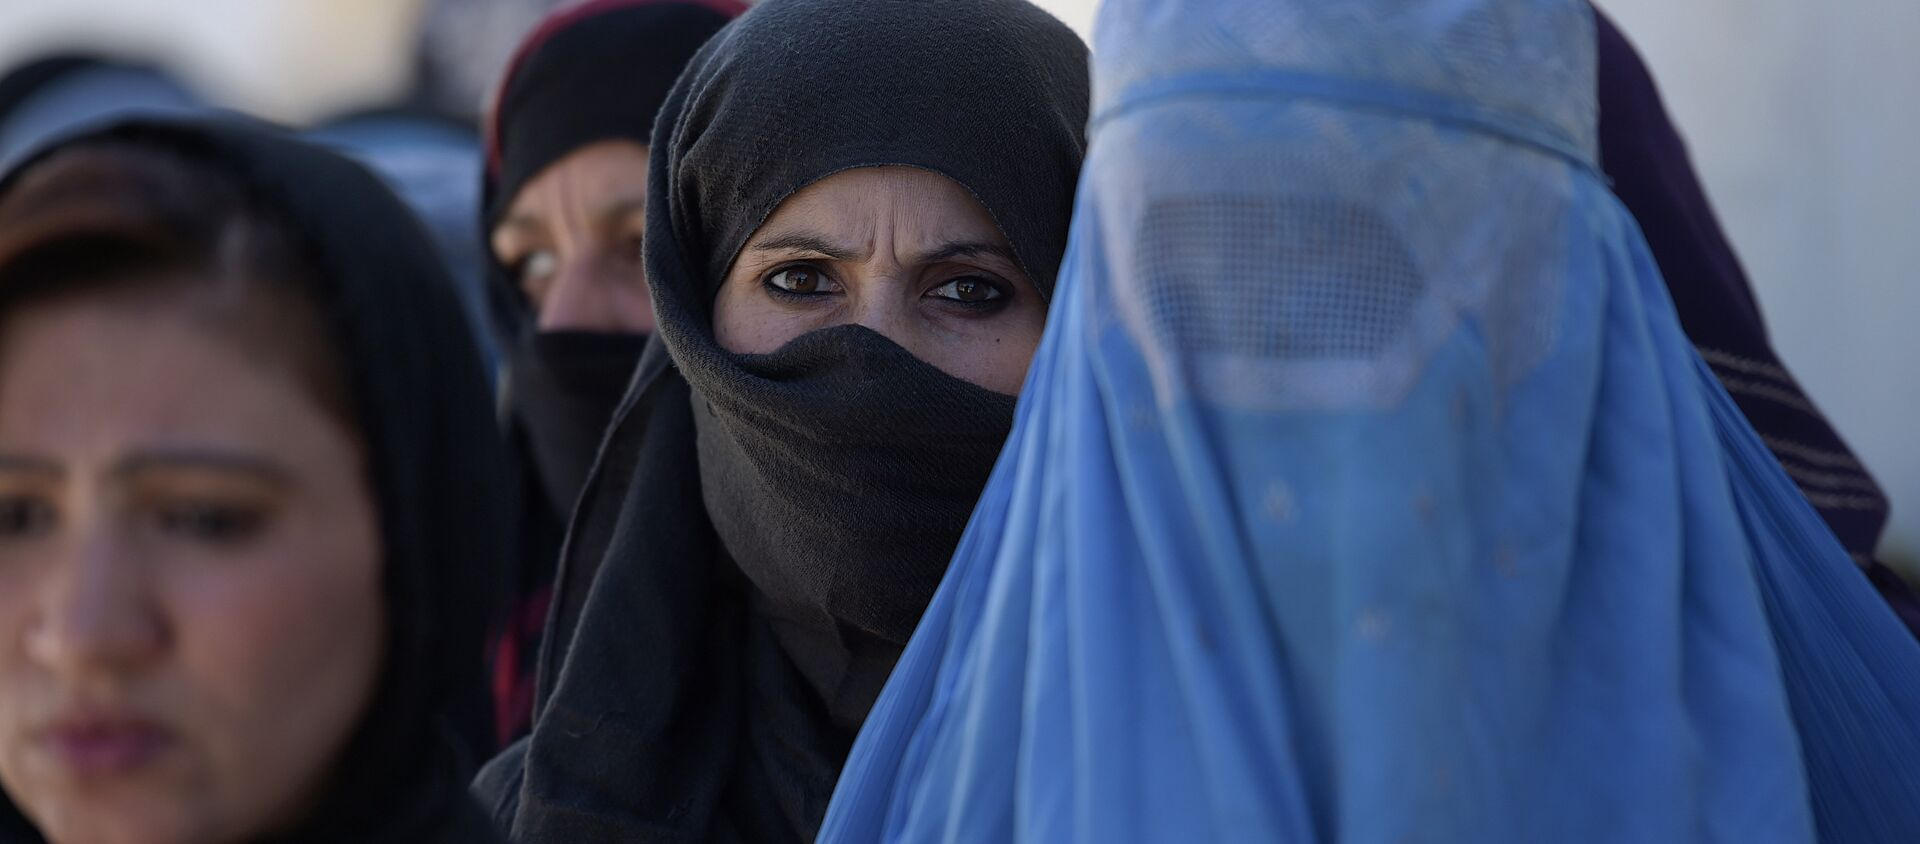 Afghan women line up to receive food donations during the month of Ramadan in Kabul on June 23, 2016 - Sputnik International, 1920